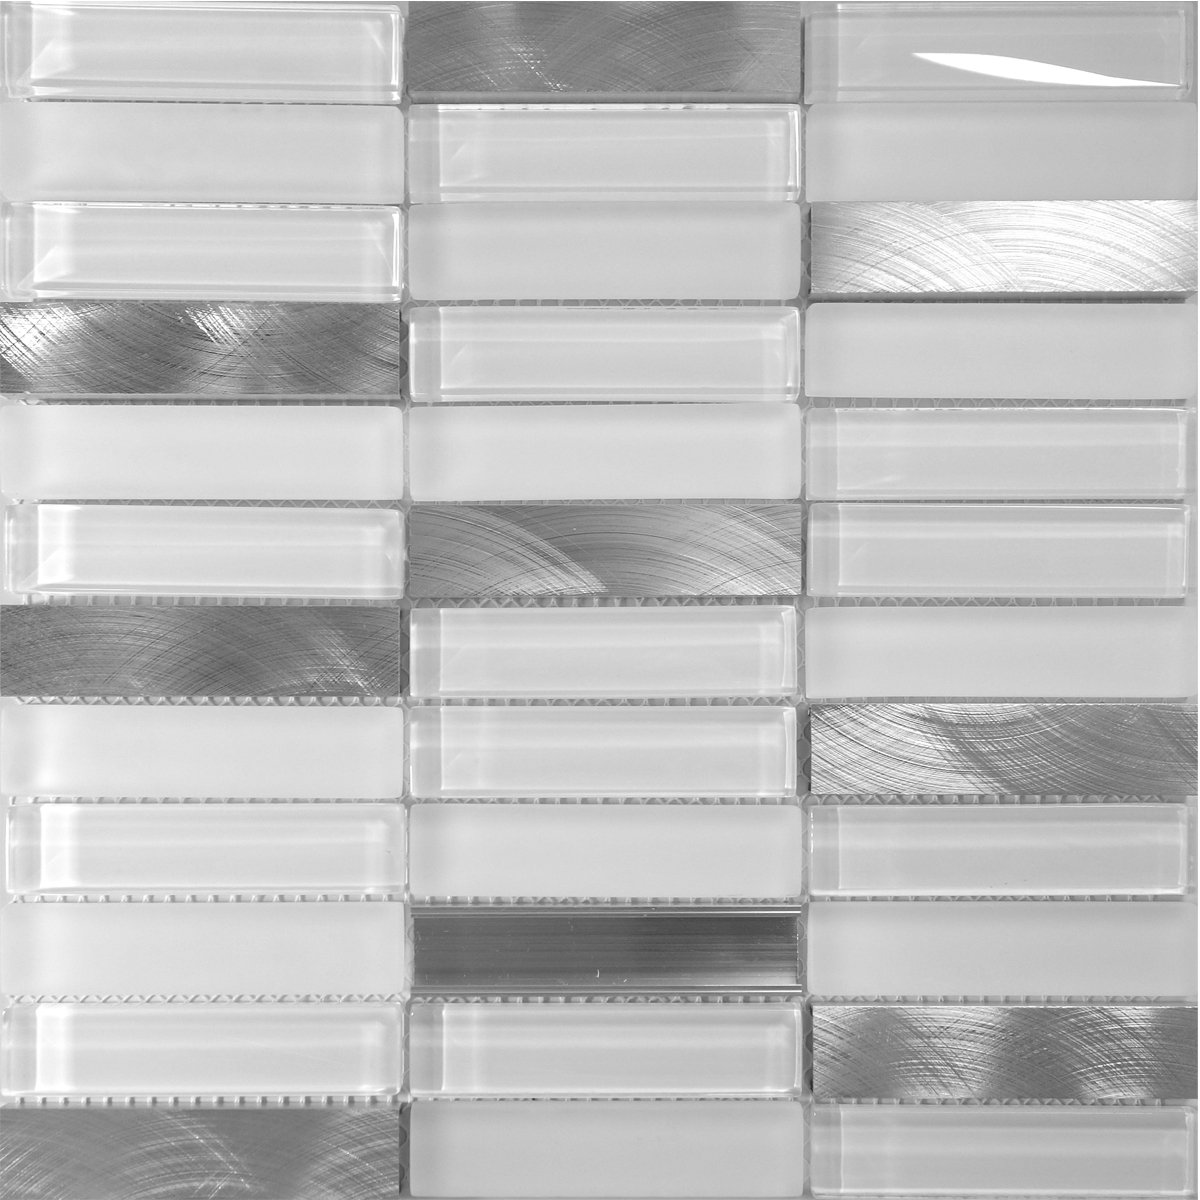 Modket TDH221MO Modern Super White Crystal Glass Blended Metallic Aluminum and Matted Glass Mosaic Tile Backsplash